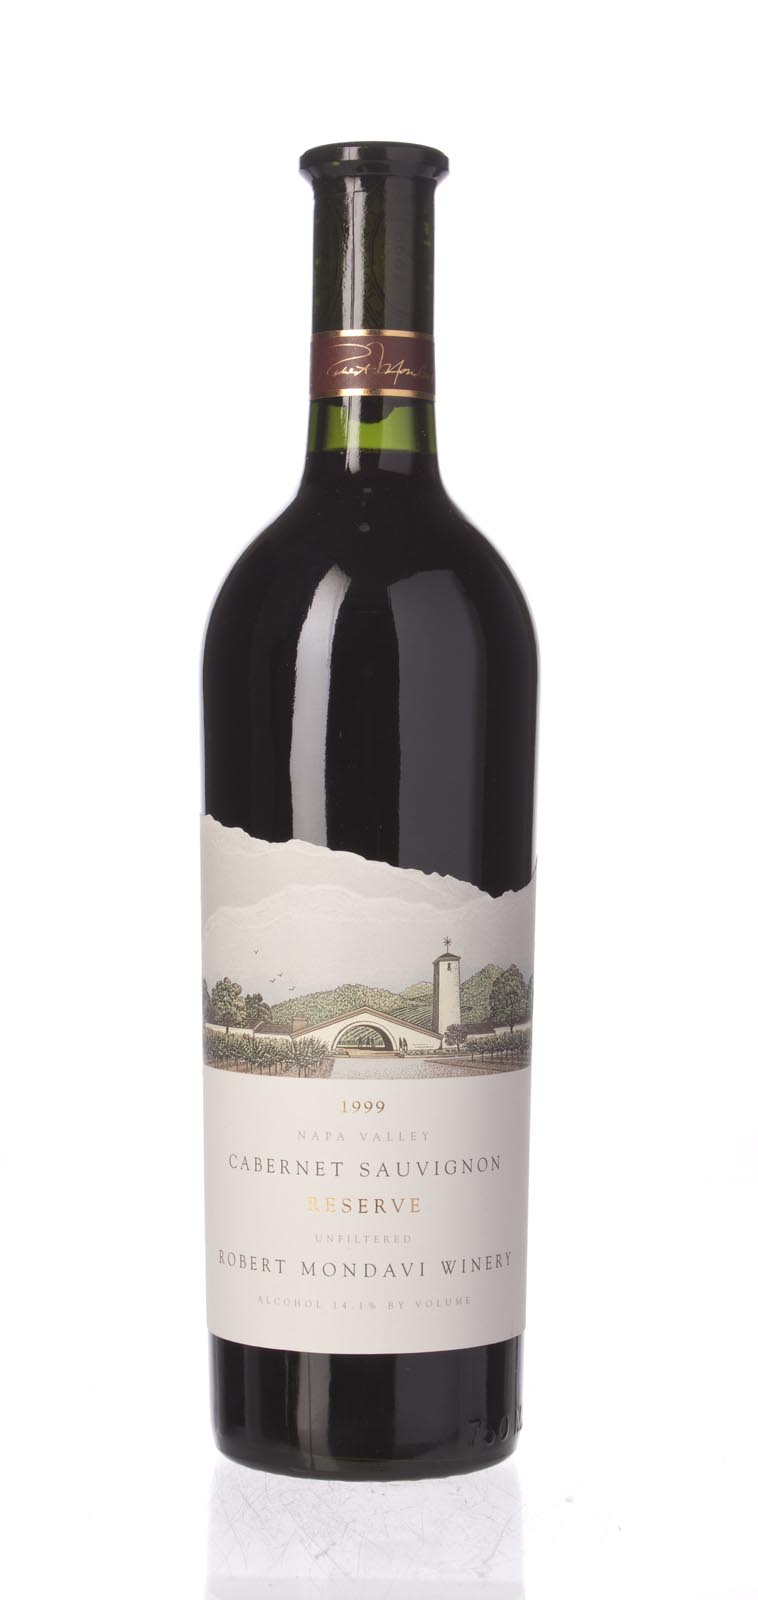 Robert Mondavi Cabernet Sauvignon Reserve 1999, 750ml (WS94, WE96) from The BPW - Merchants of rare and fine wines.